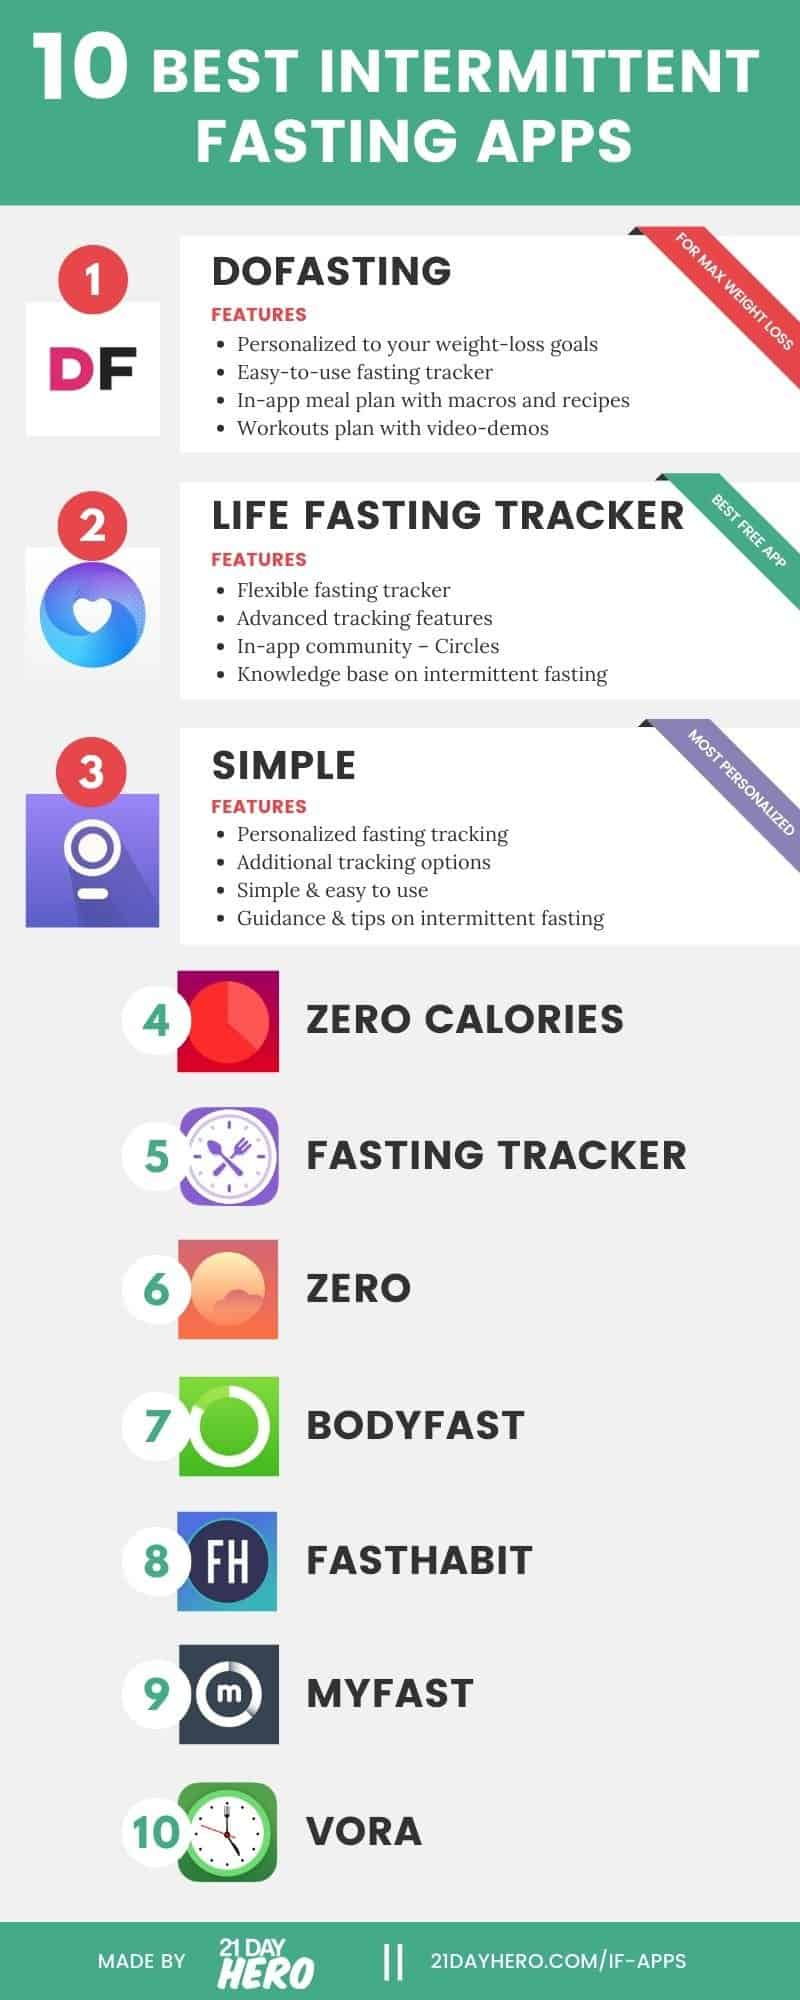 10 best intermittent fasting apps